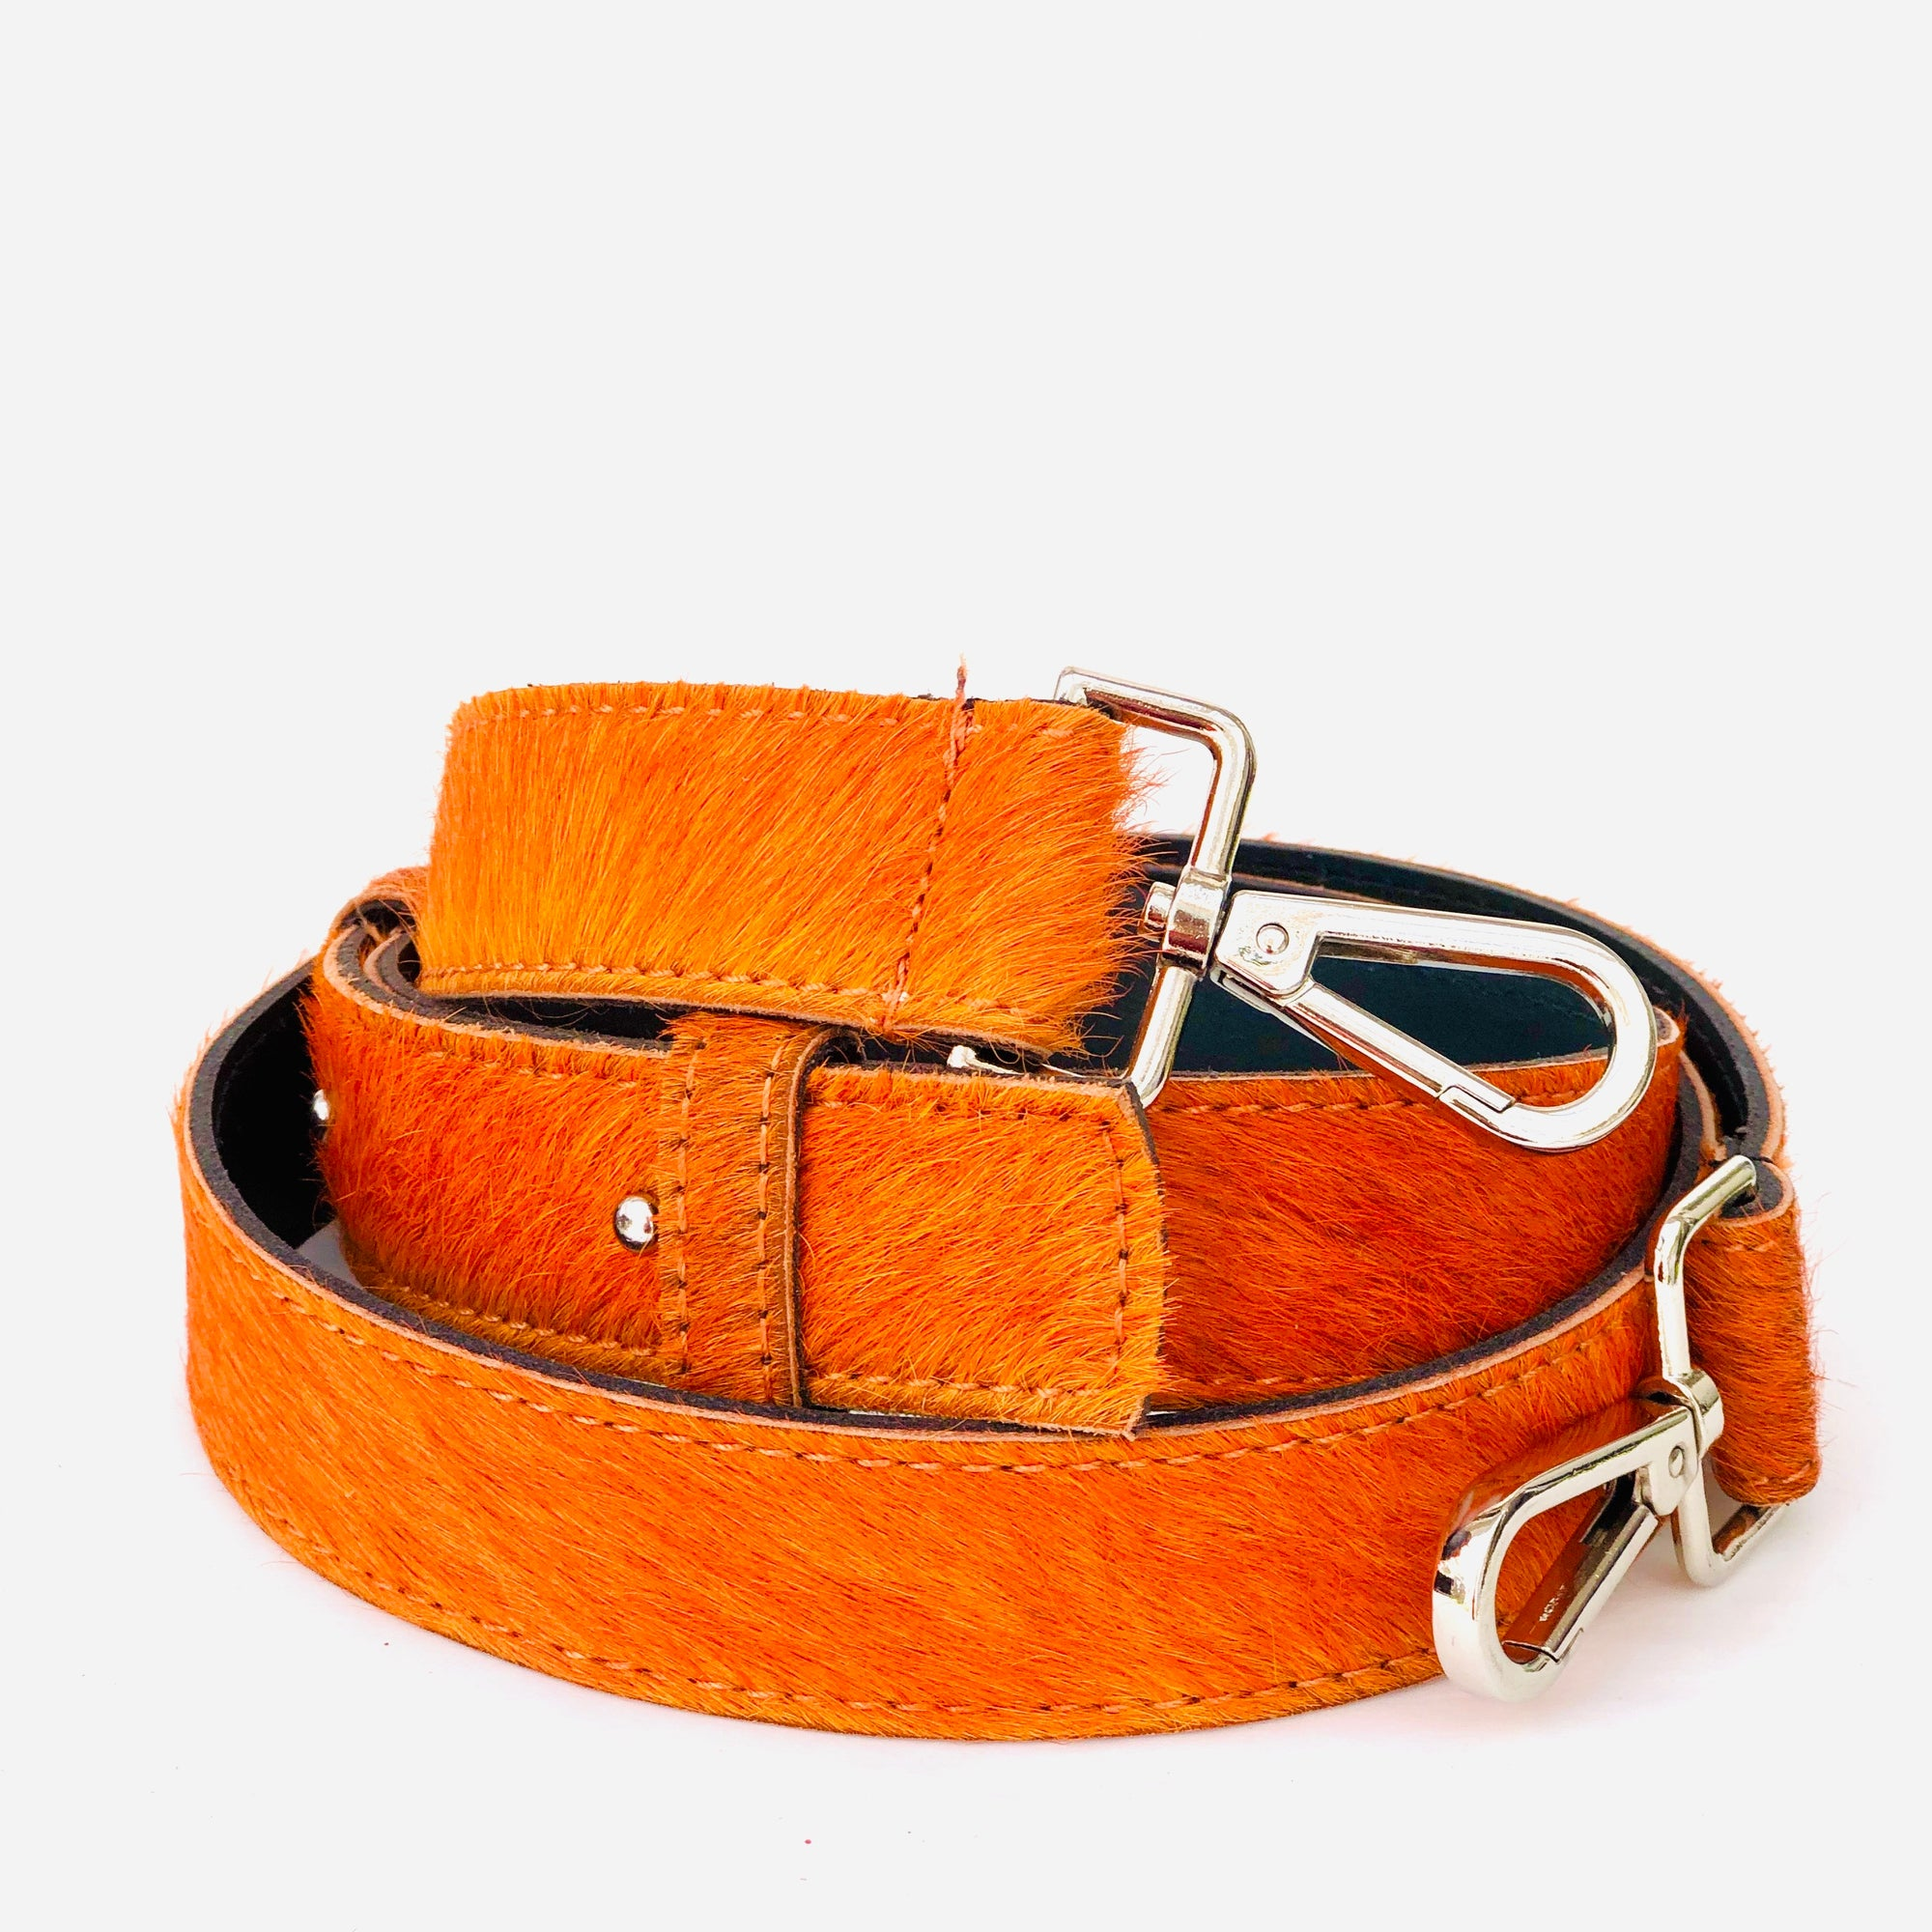 Neon Orange Hair On Hide Leather Crossbody Bag Replacement Strap